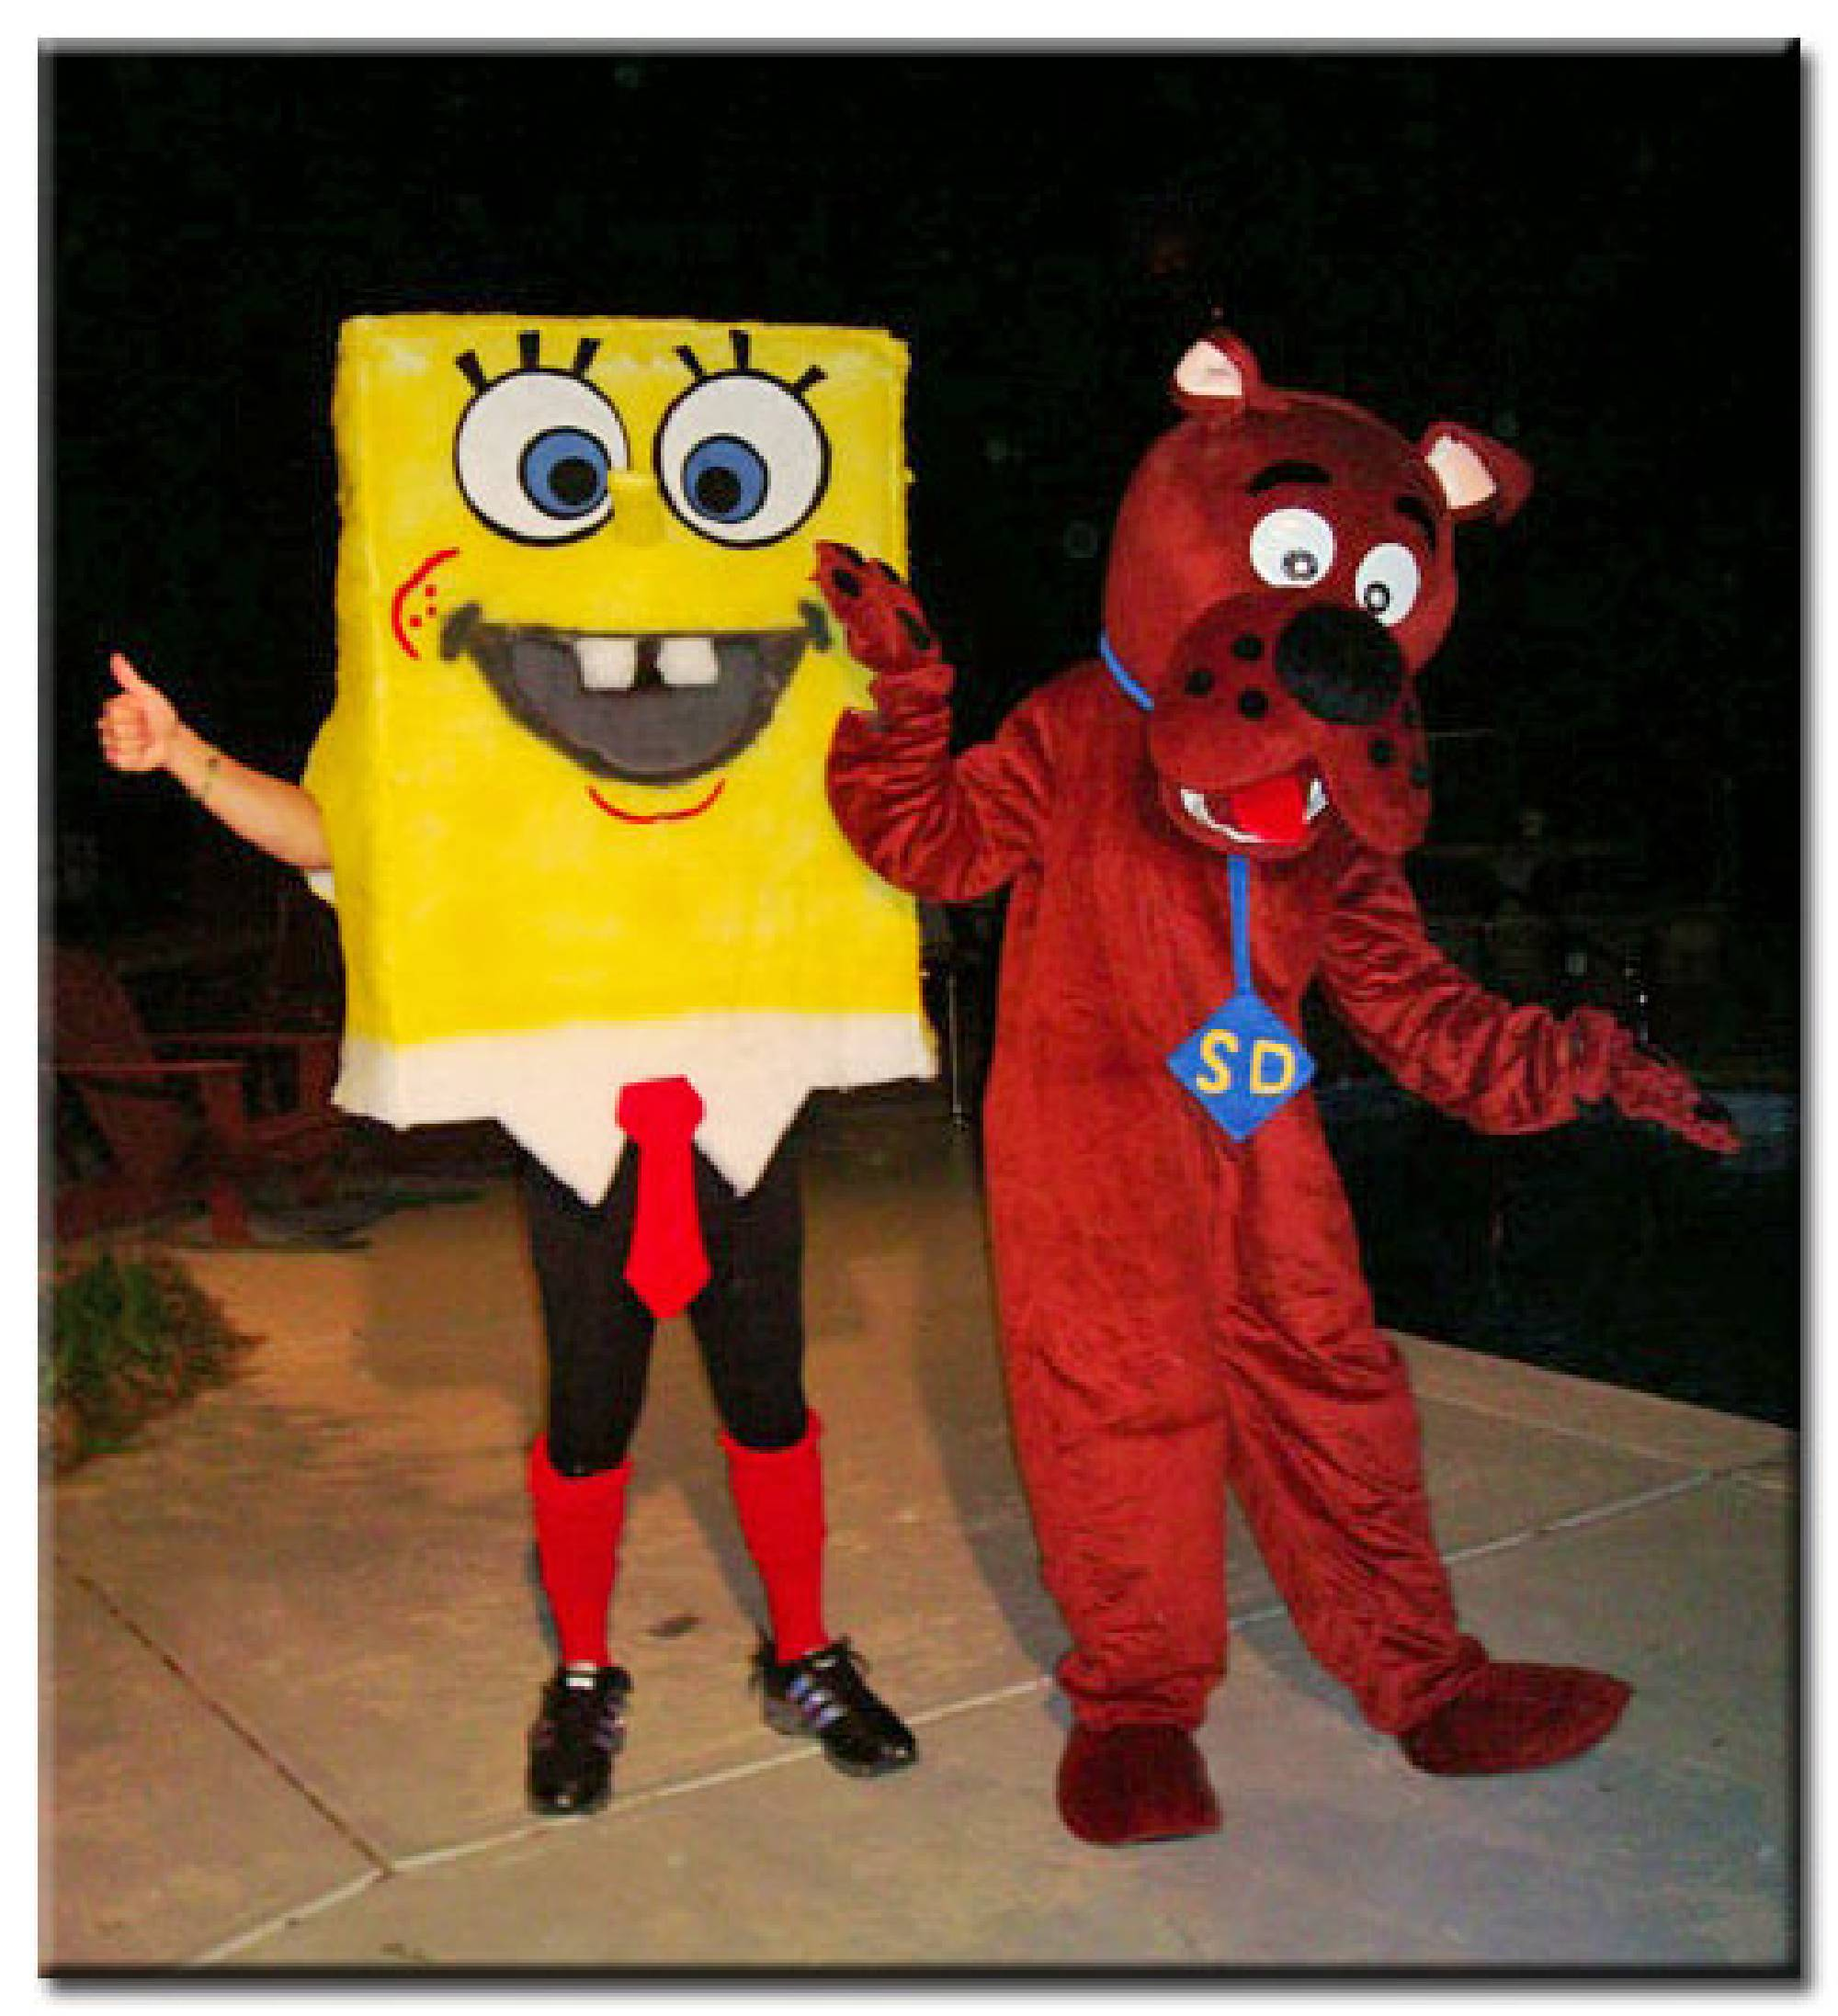 Yellow sea creature and Junior detective dog costumed character rental